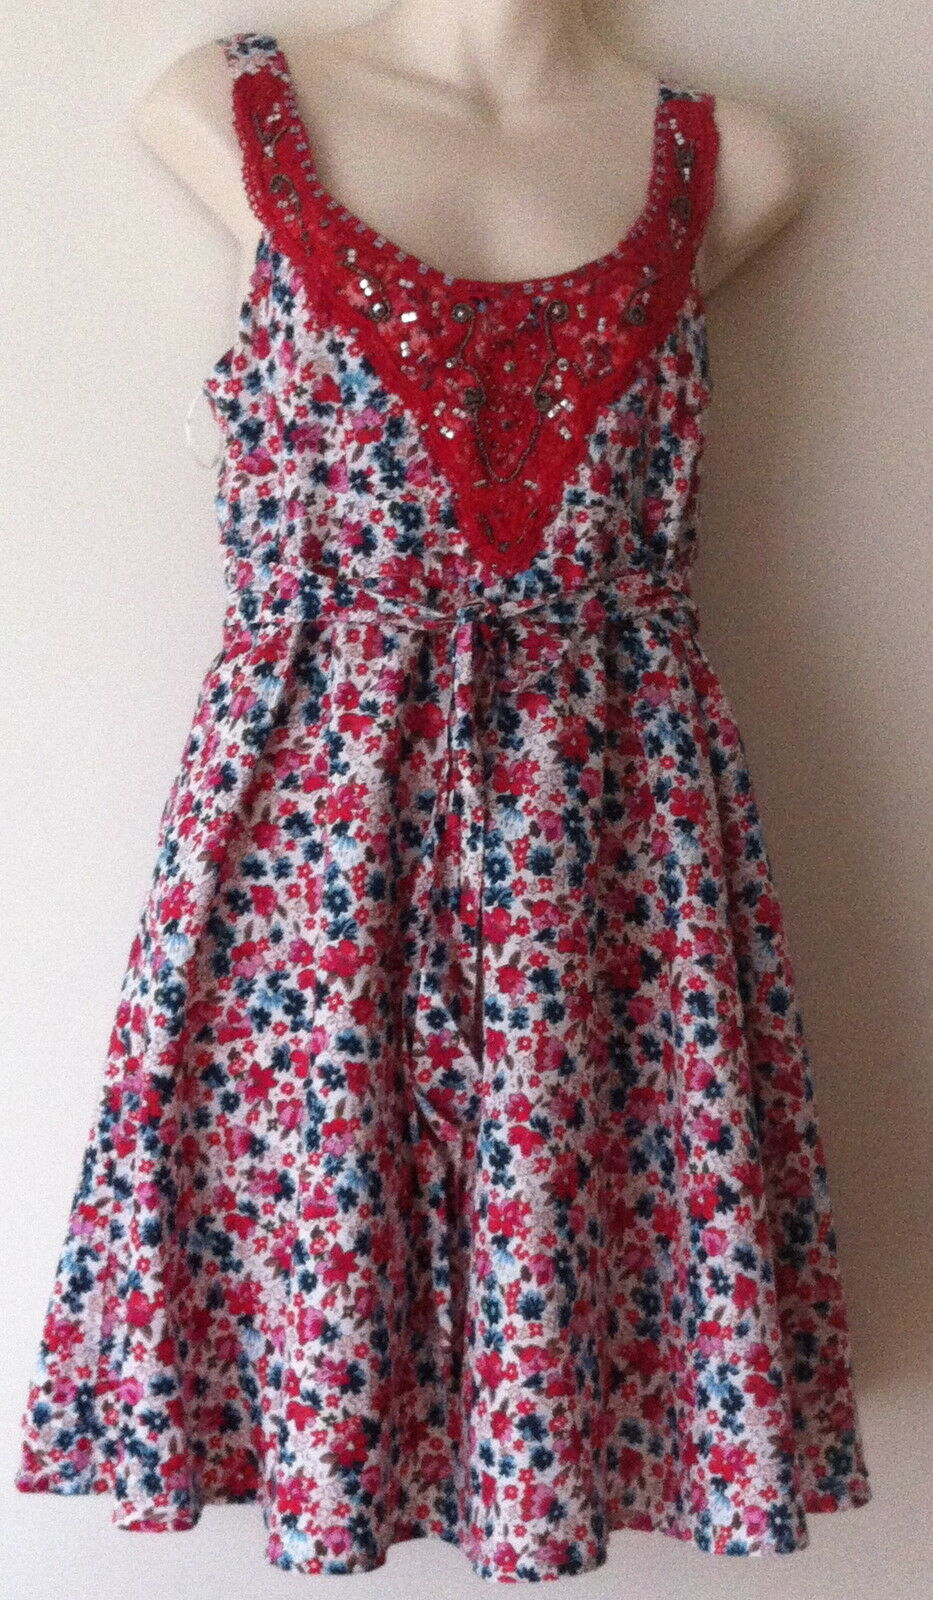 eec15383d0 LADIES DRESS REDHERRING DEBENHAMS SIZE SUMMER DRESS 12 FLORAL ...